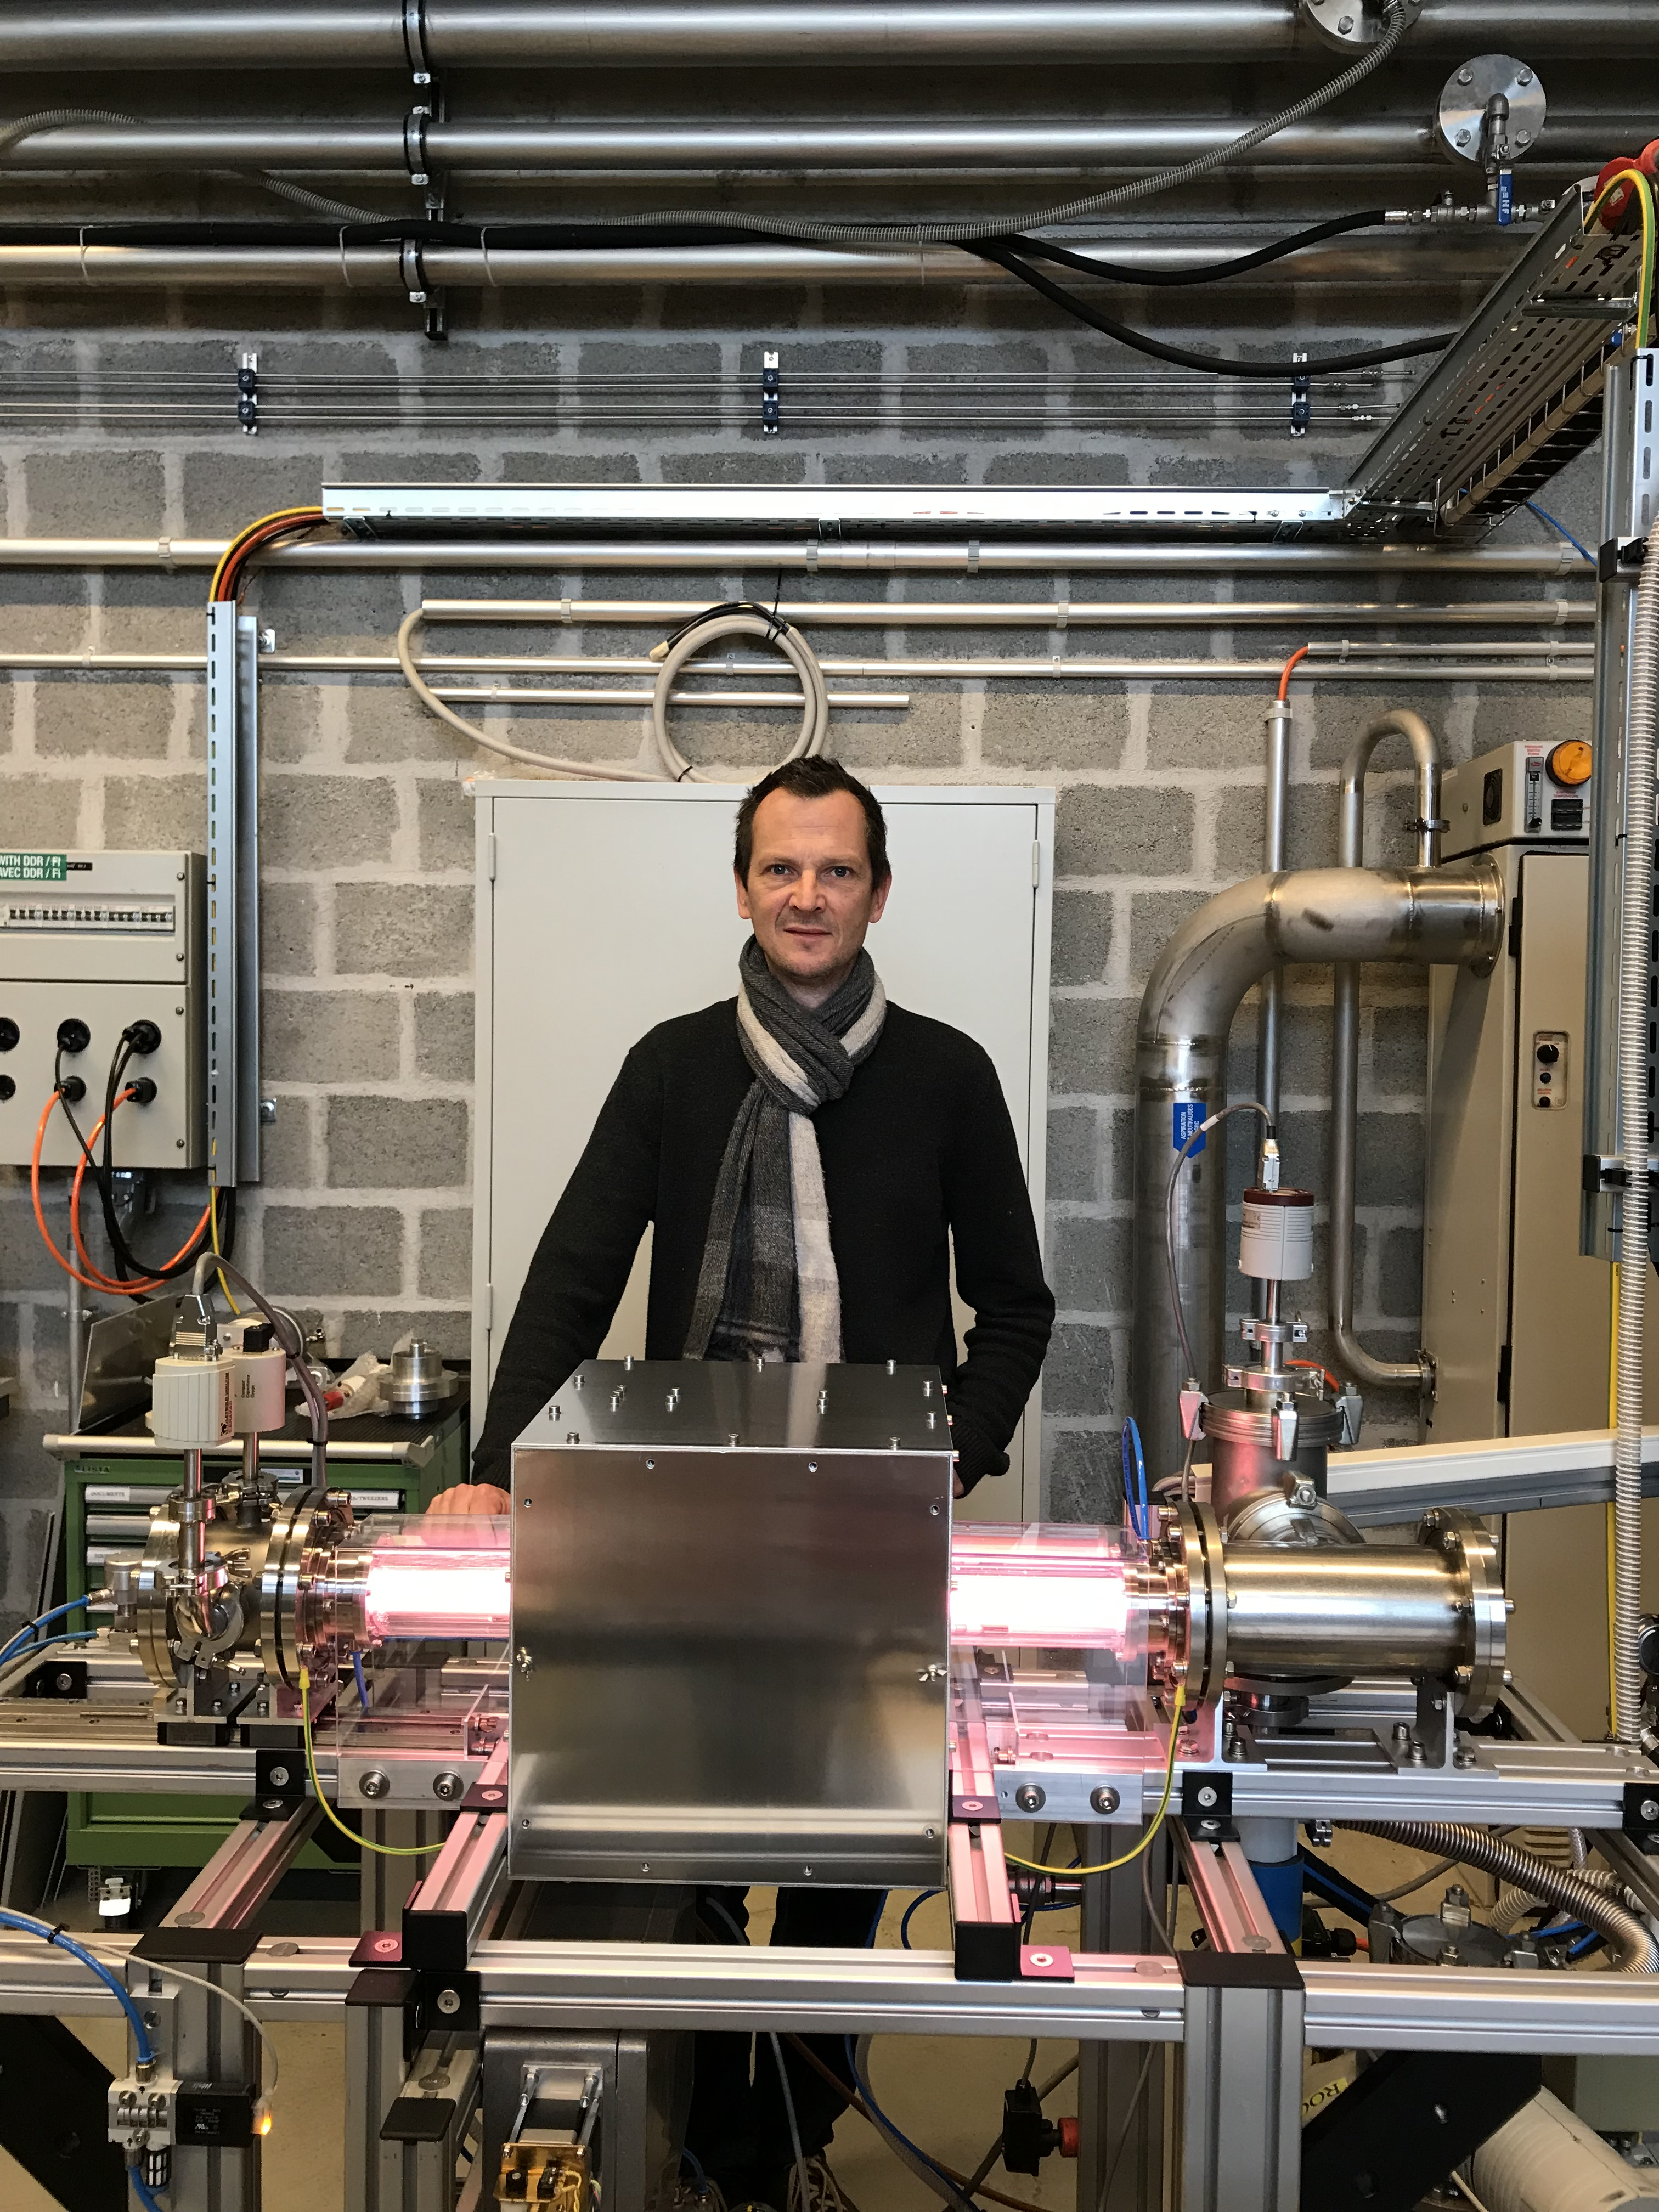 plasma antenna thesis Doctoral thesis modelling of plasma-antenna coupling and non-linear radio frequency wave-plasma-wall interactions in the magnetized plasma device under ion cyclotron range of frequencies.